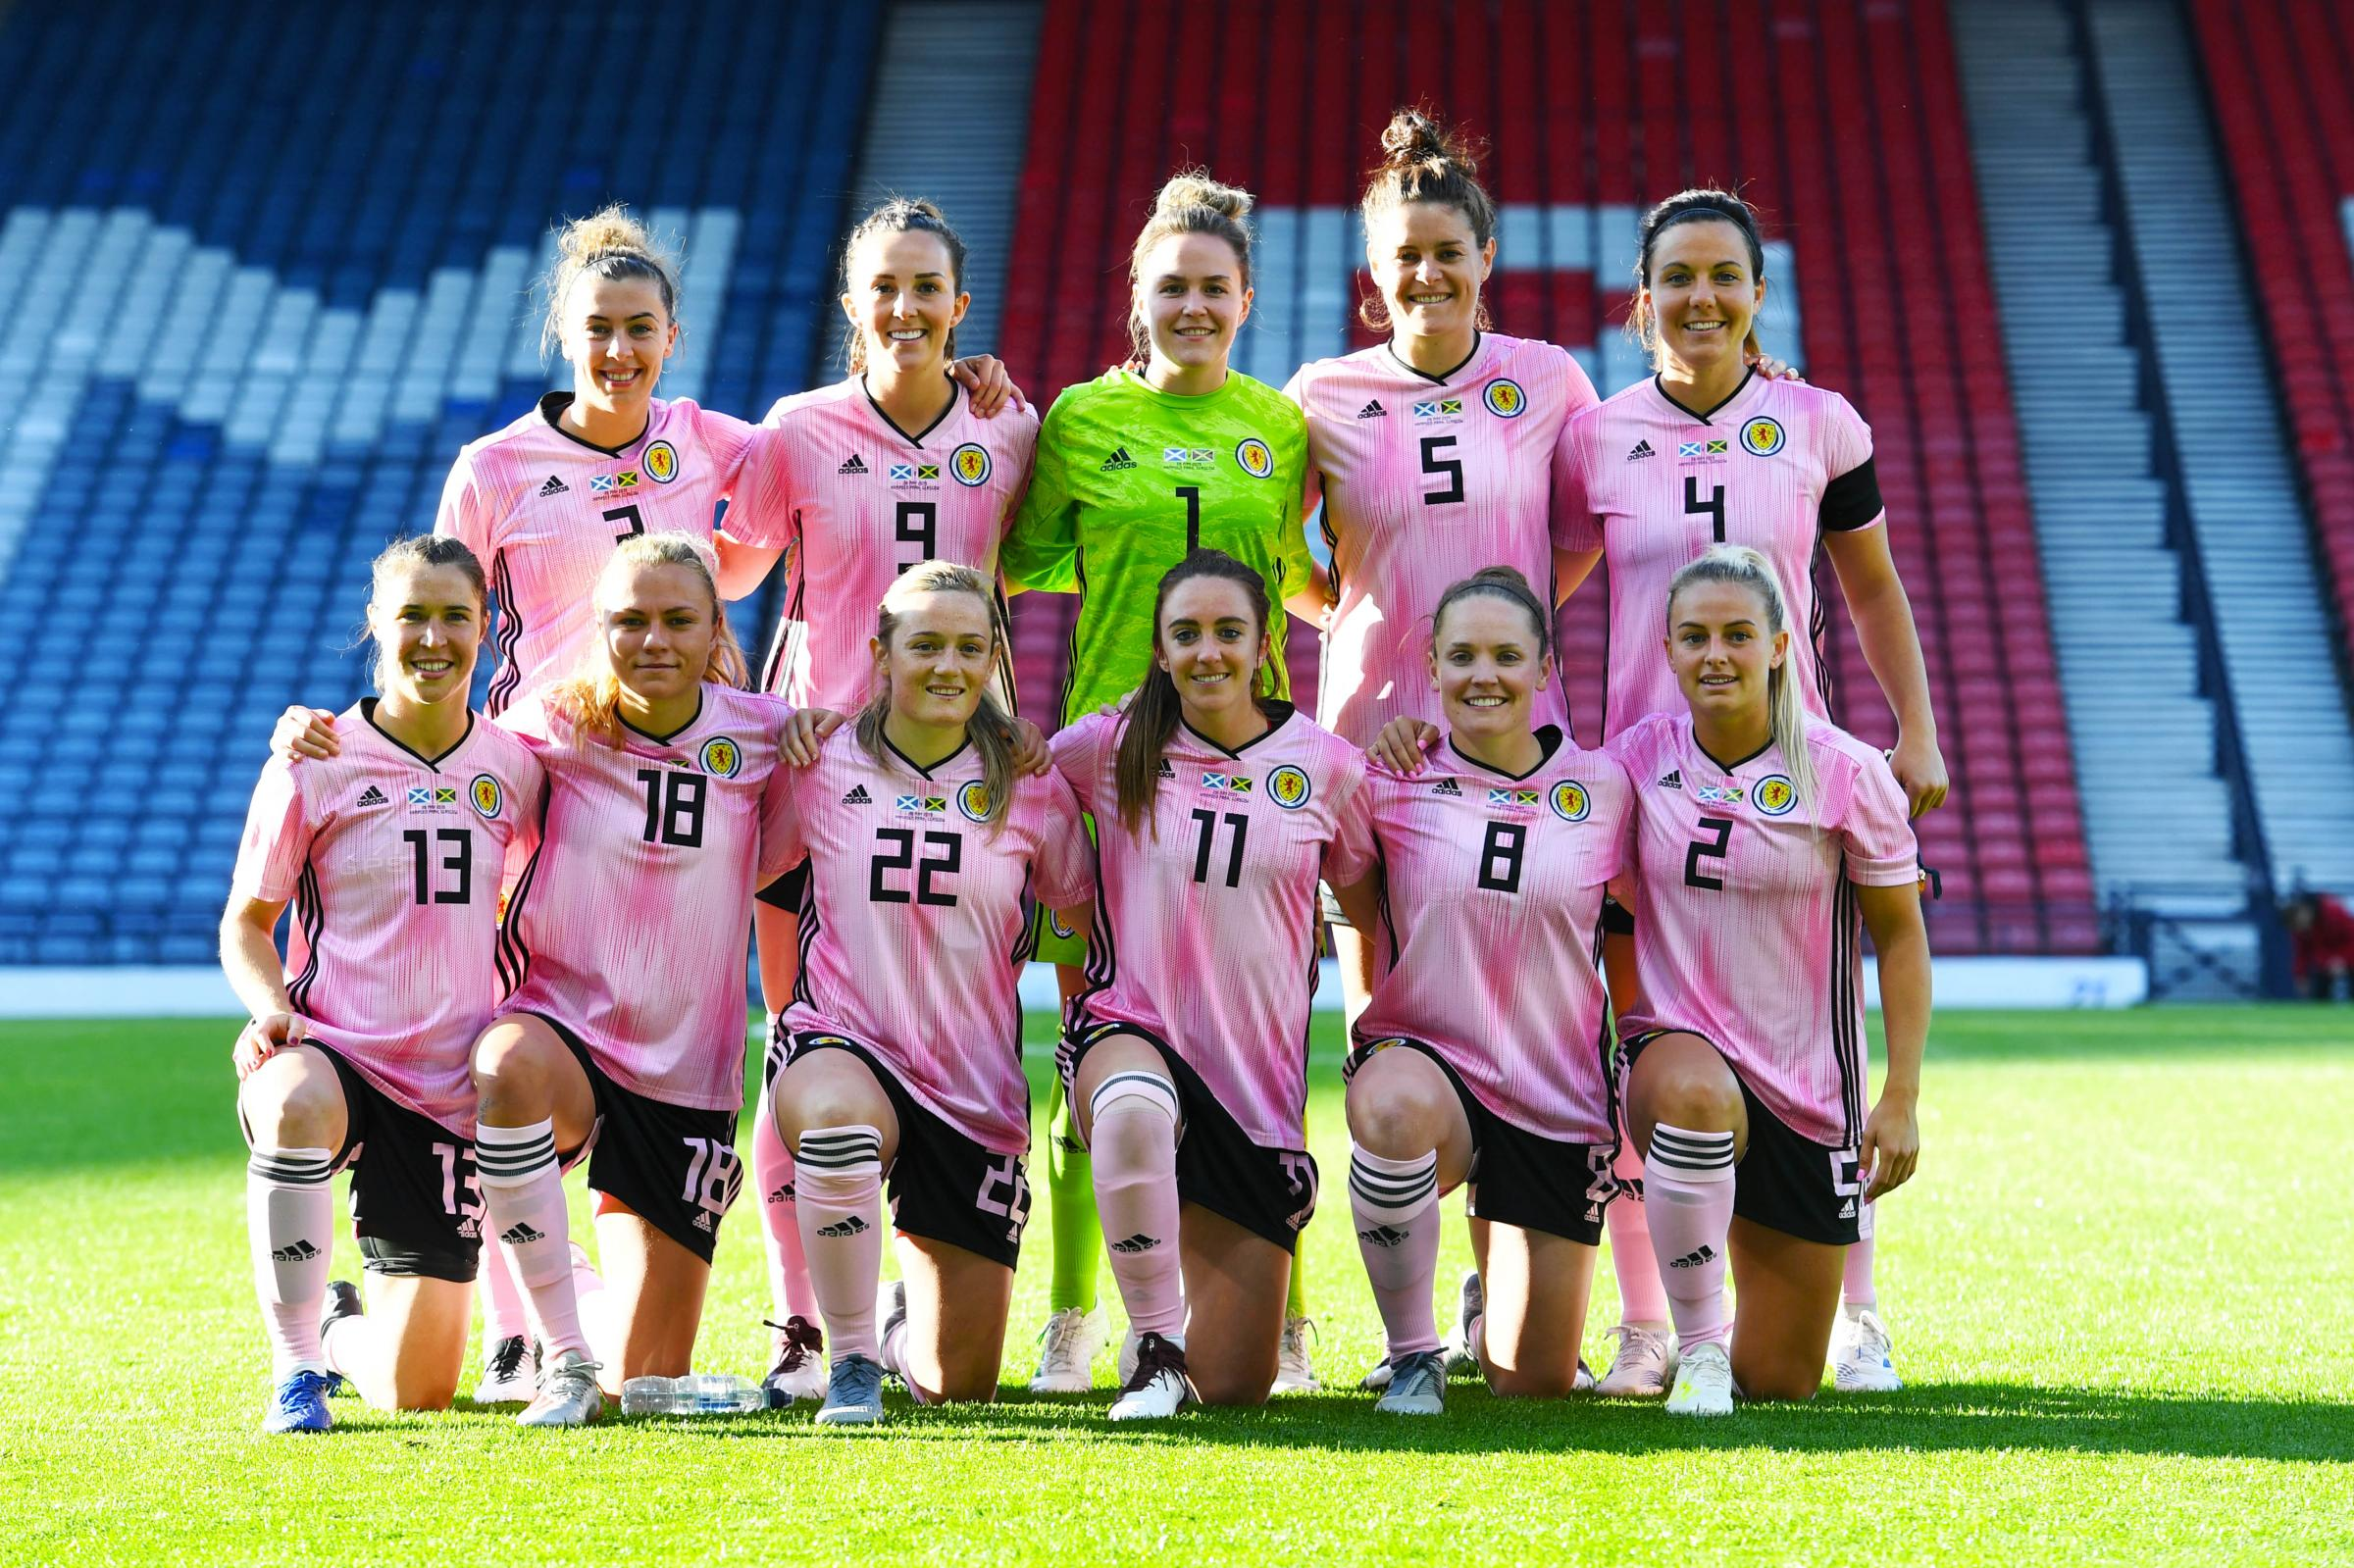 Kevin McKenna: When it comes to Scotland's women's football team, everybody wins | HeraldScotland